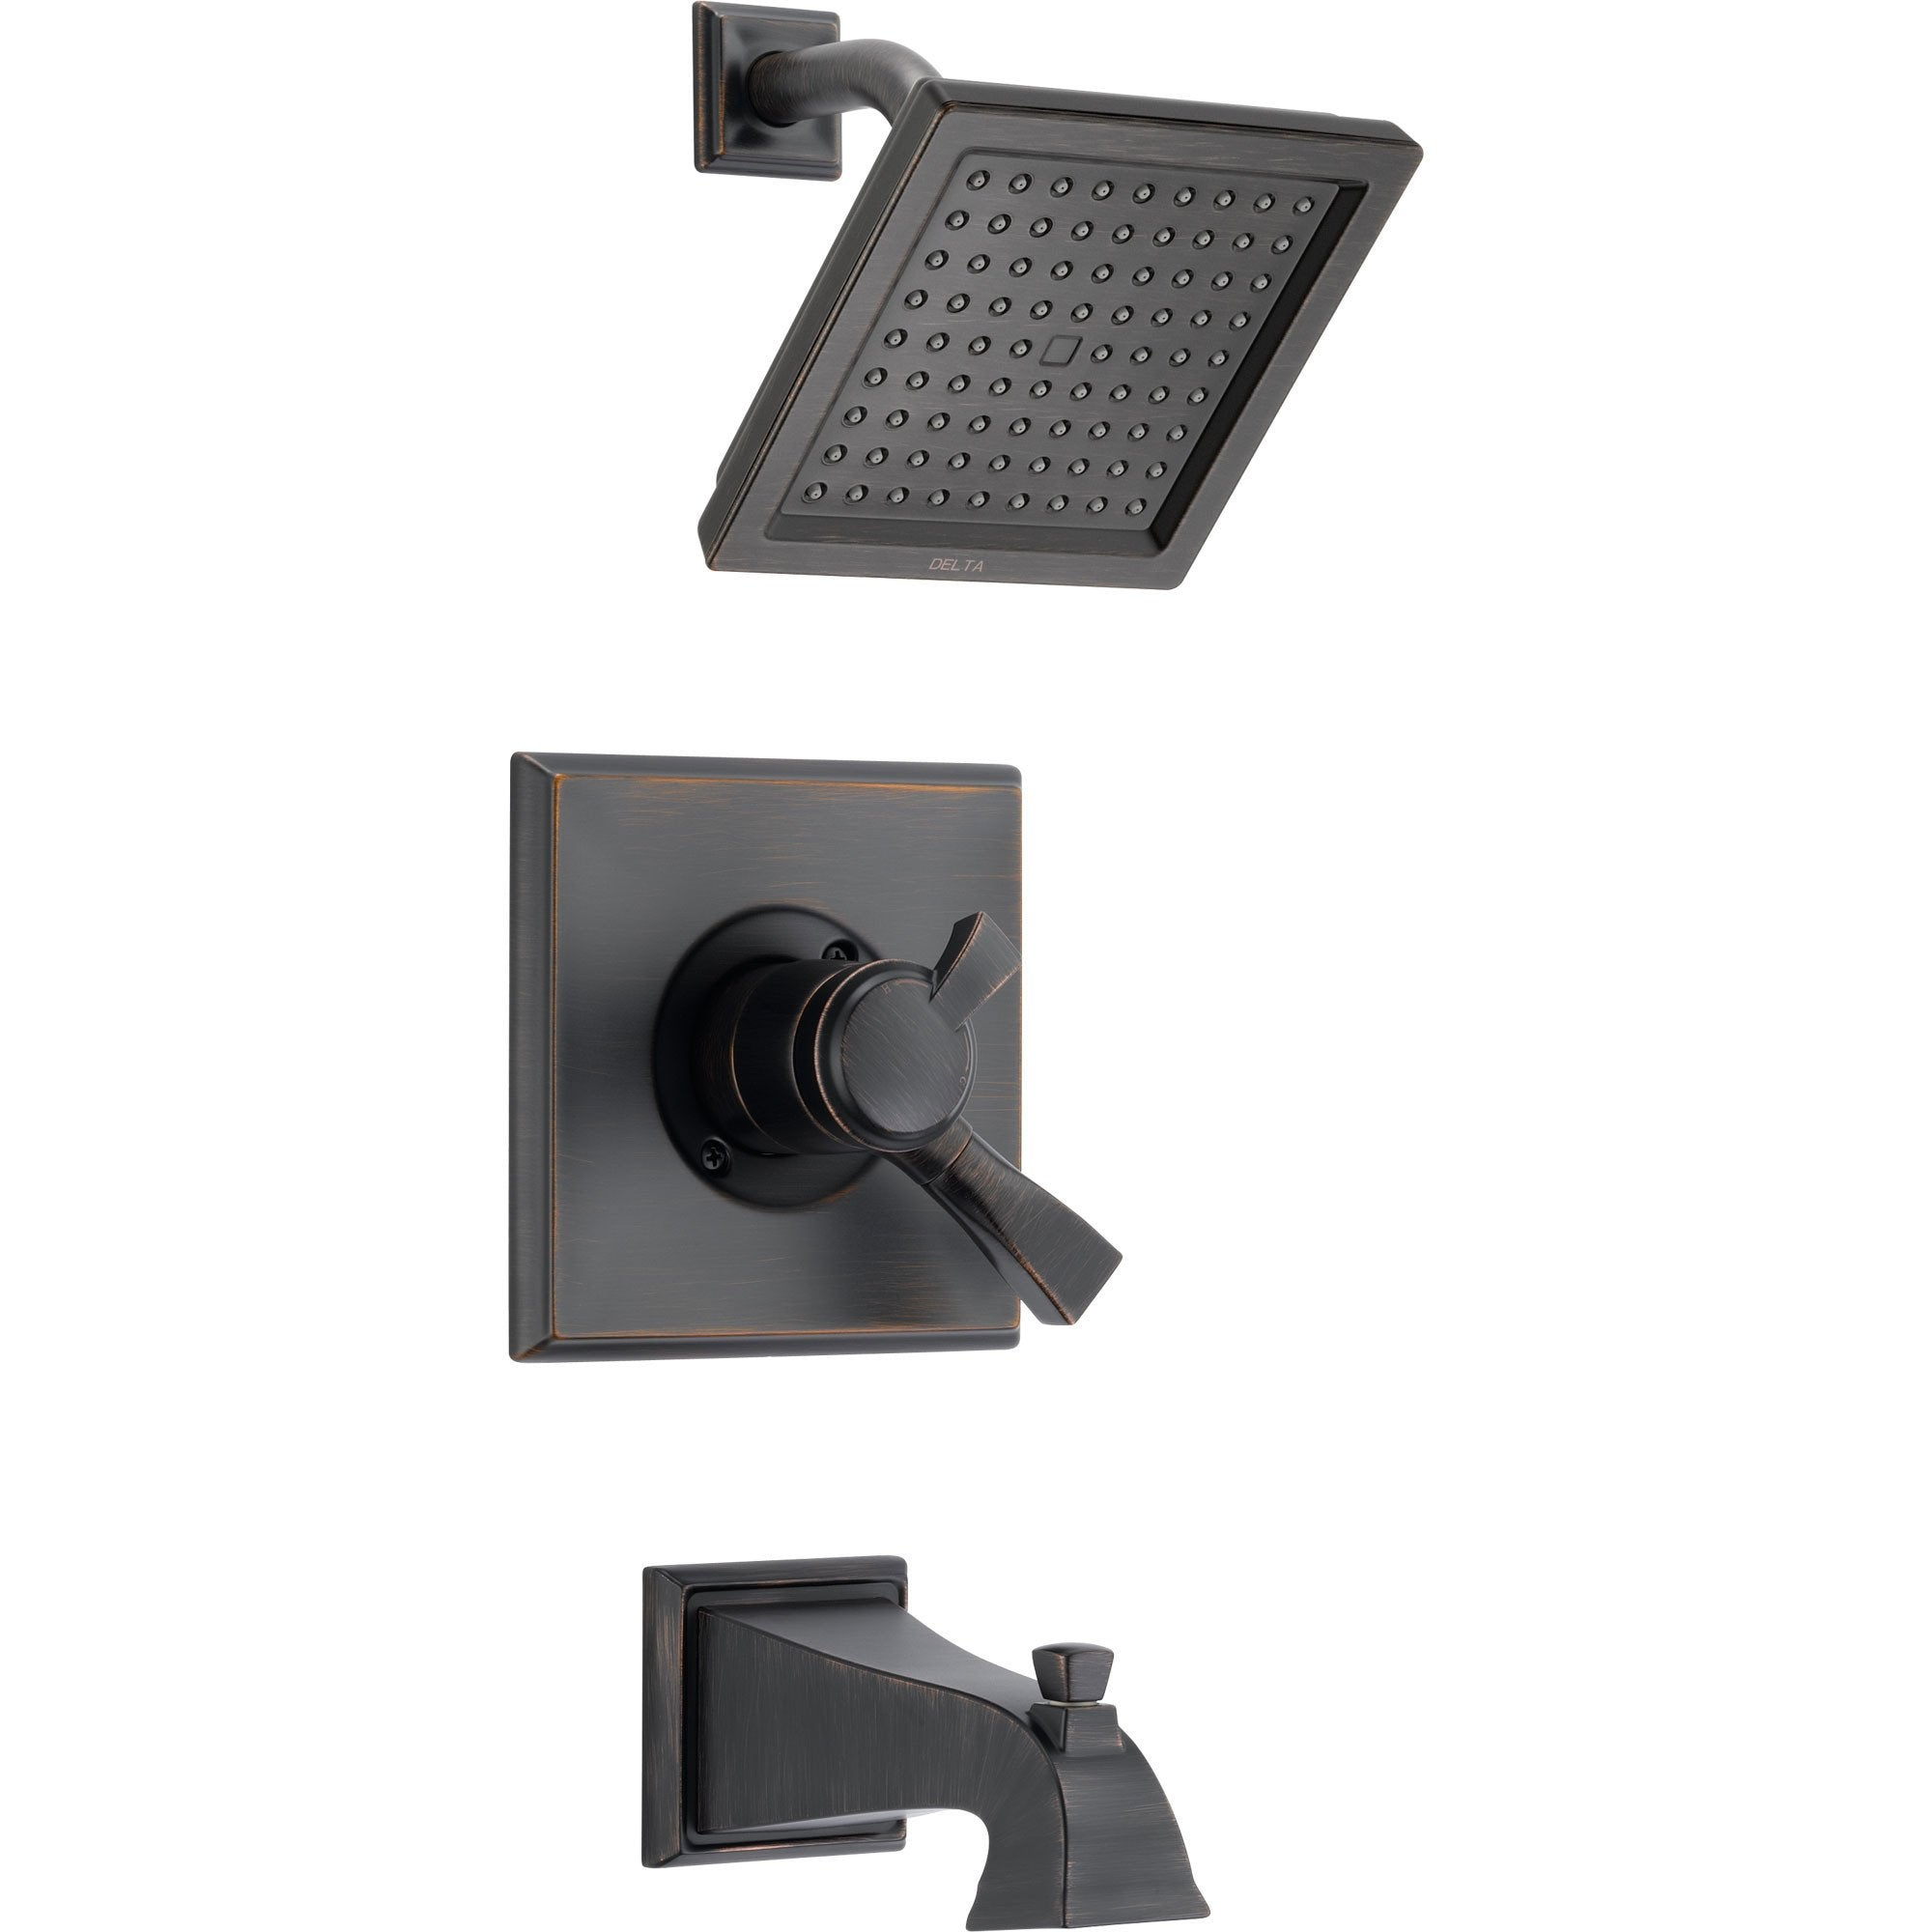 Delta Dryden Temp/Volume Venetian Bronze Tub & Shower Faucet with Valve D374V